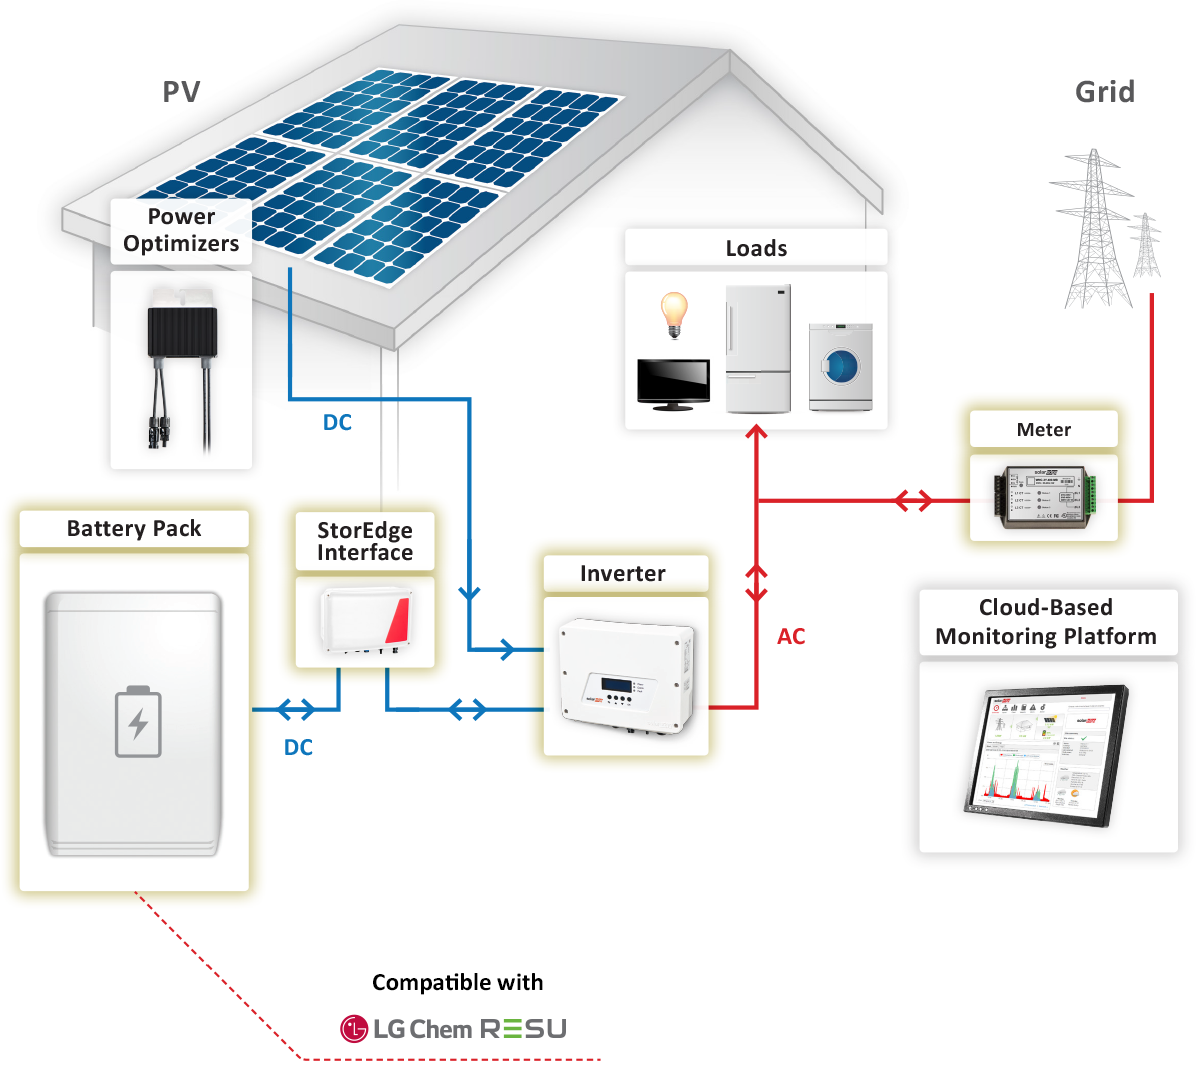 76kW Grid Tied Battery Backup System 1196 x 1081 png self-consumption-en_06-06-2017.png